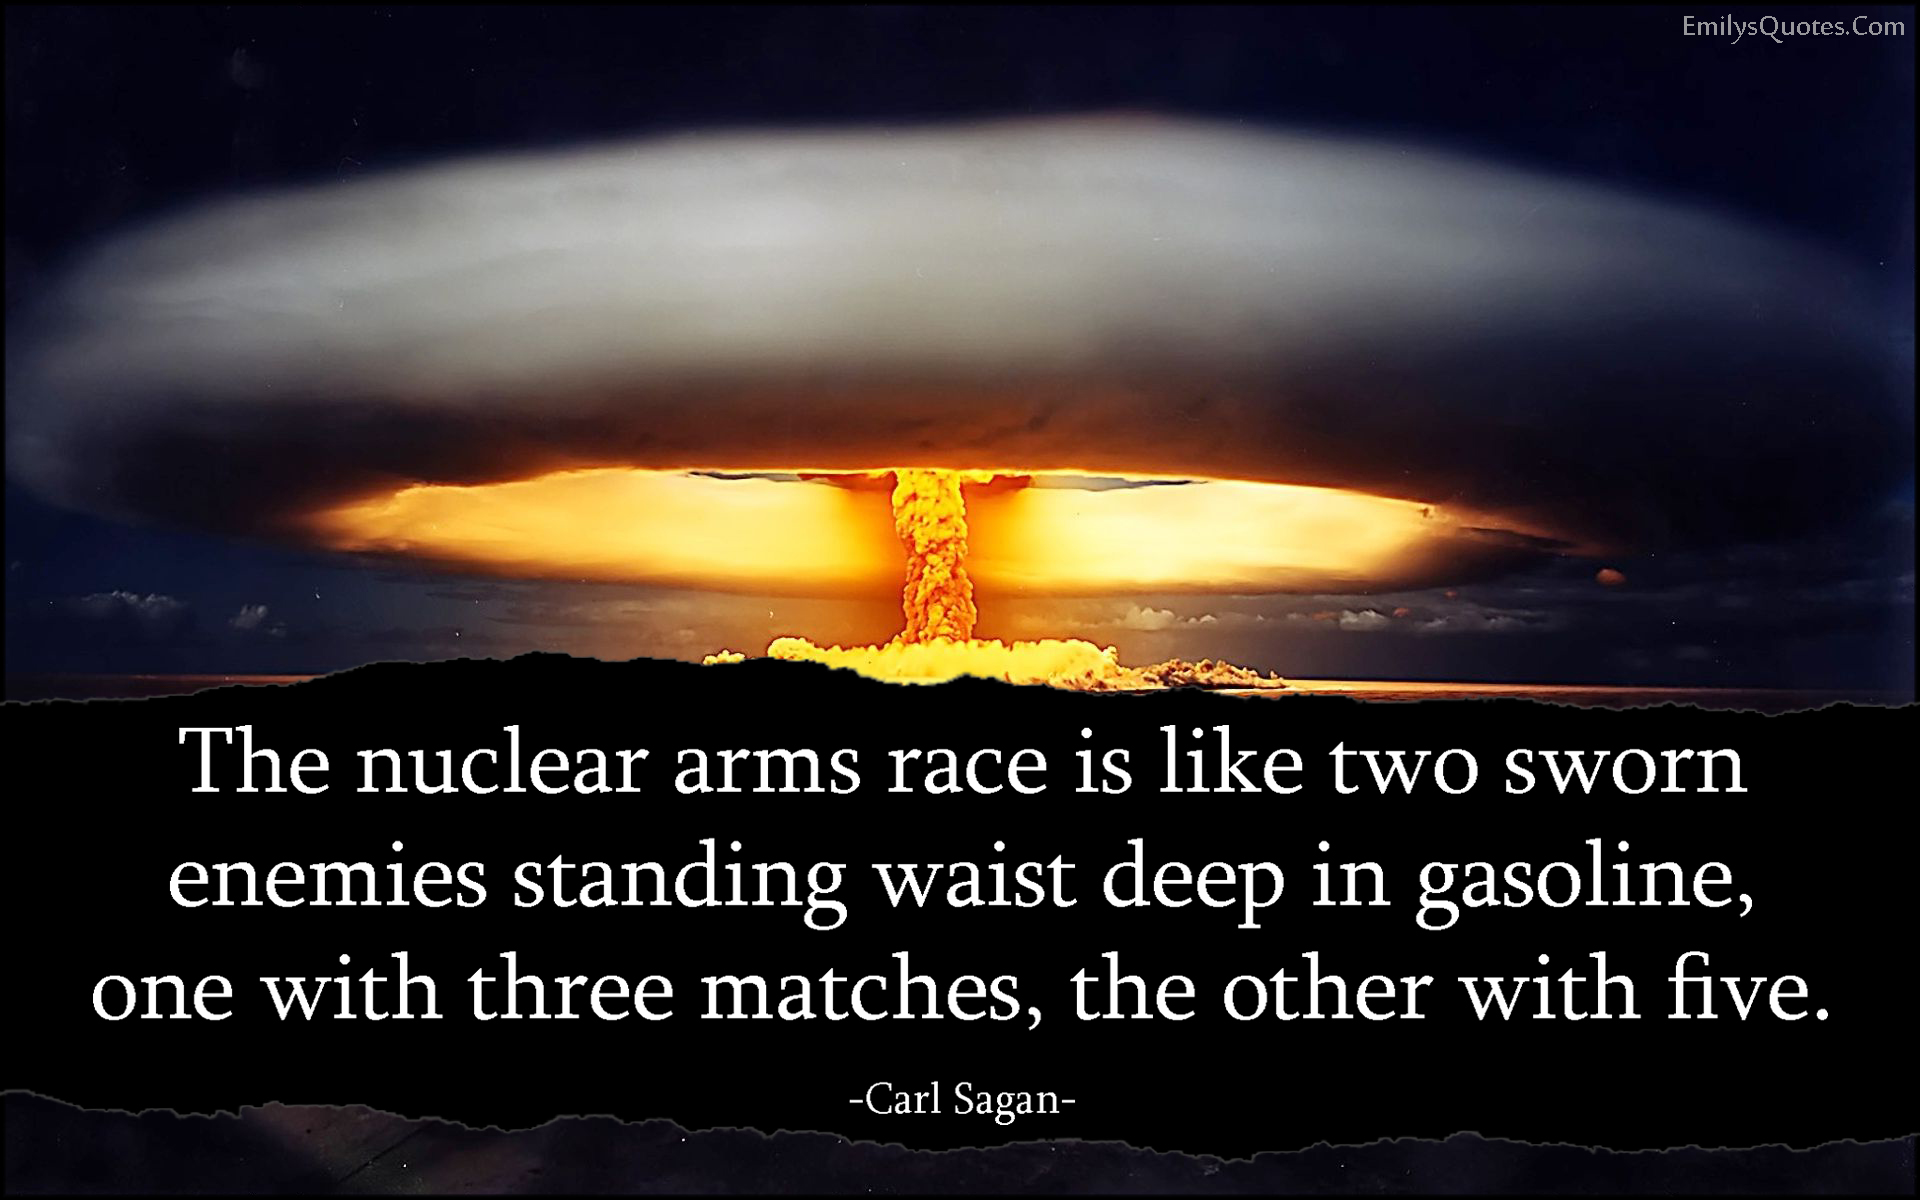 EmilysQuotes.Com - nuclear arms race, enemies, gasoline, matches, negative, war, death, consequences, threat, Carl Sagan